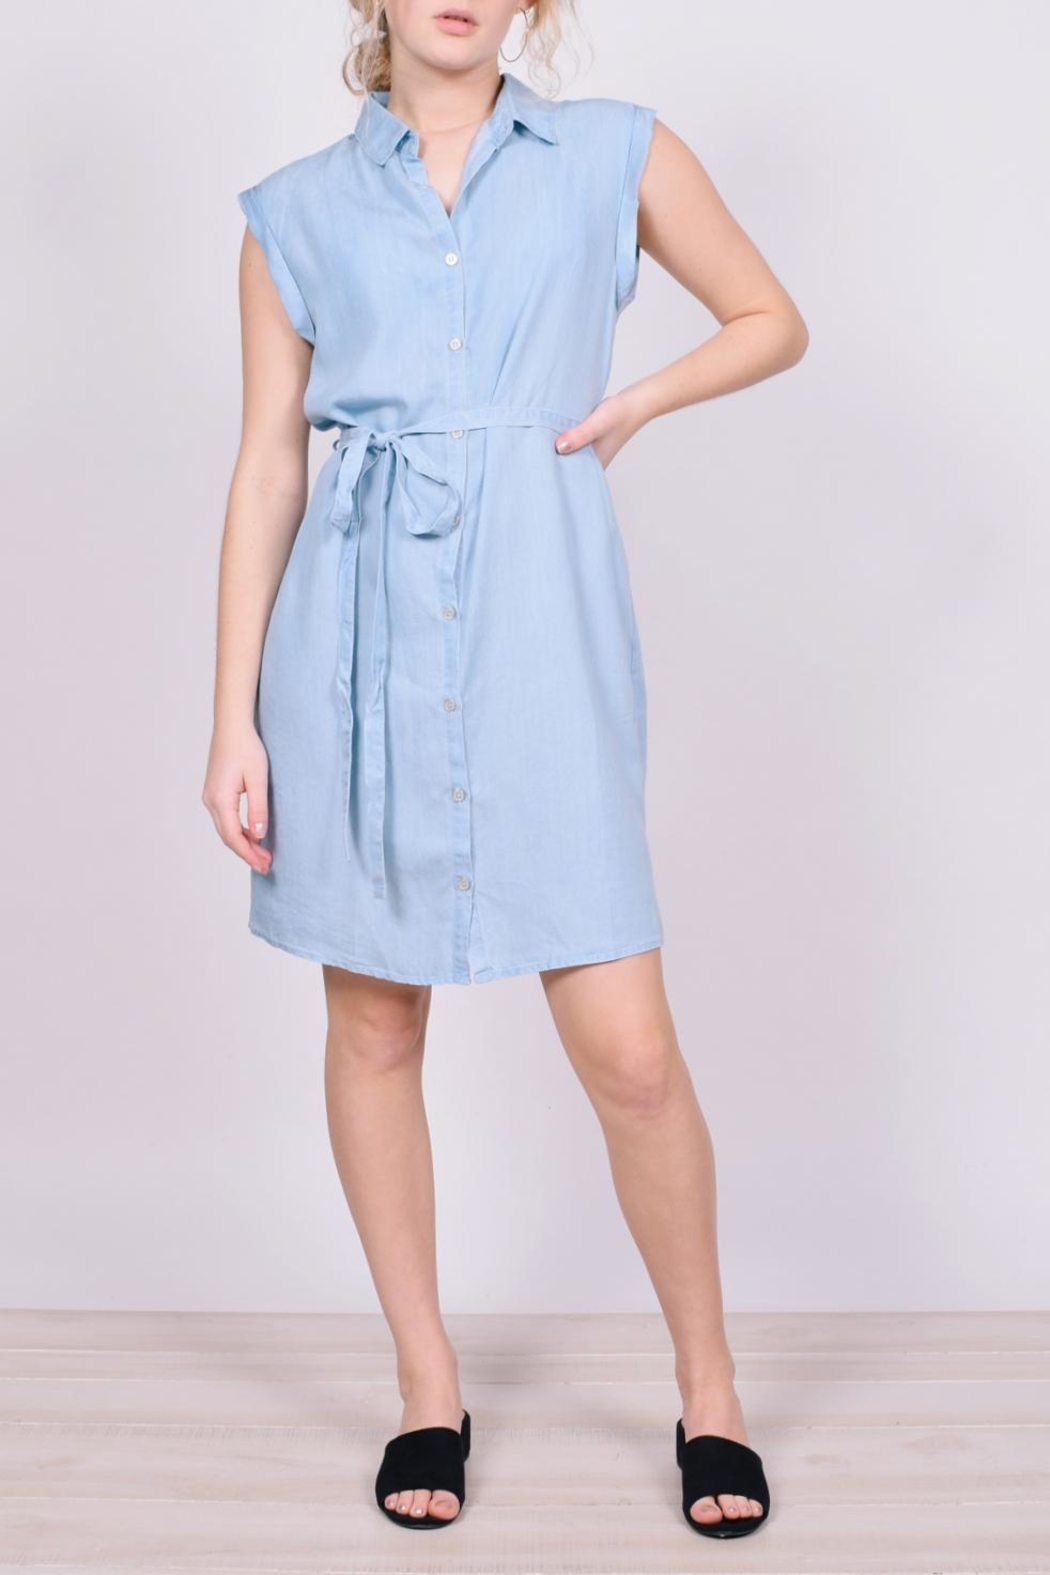 Unbranded Denim Button-Down Dress - Front Full Image